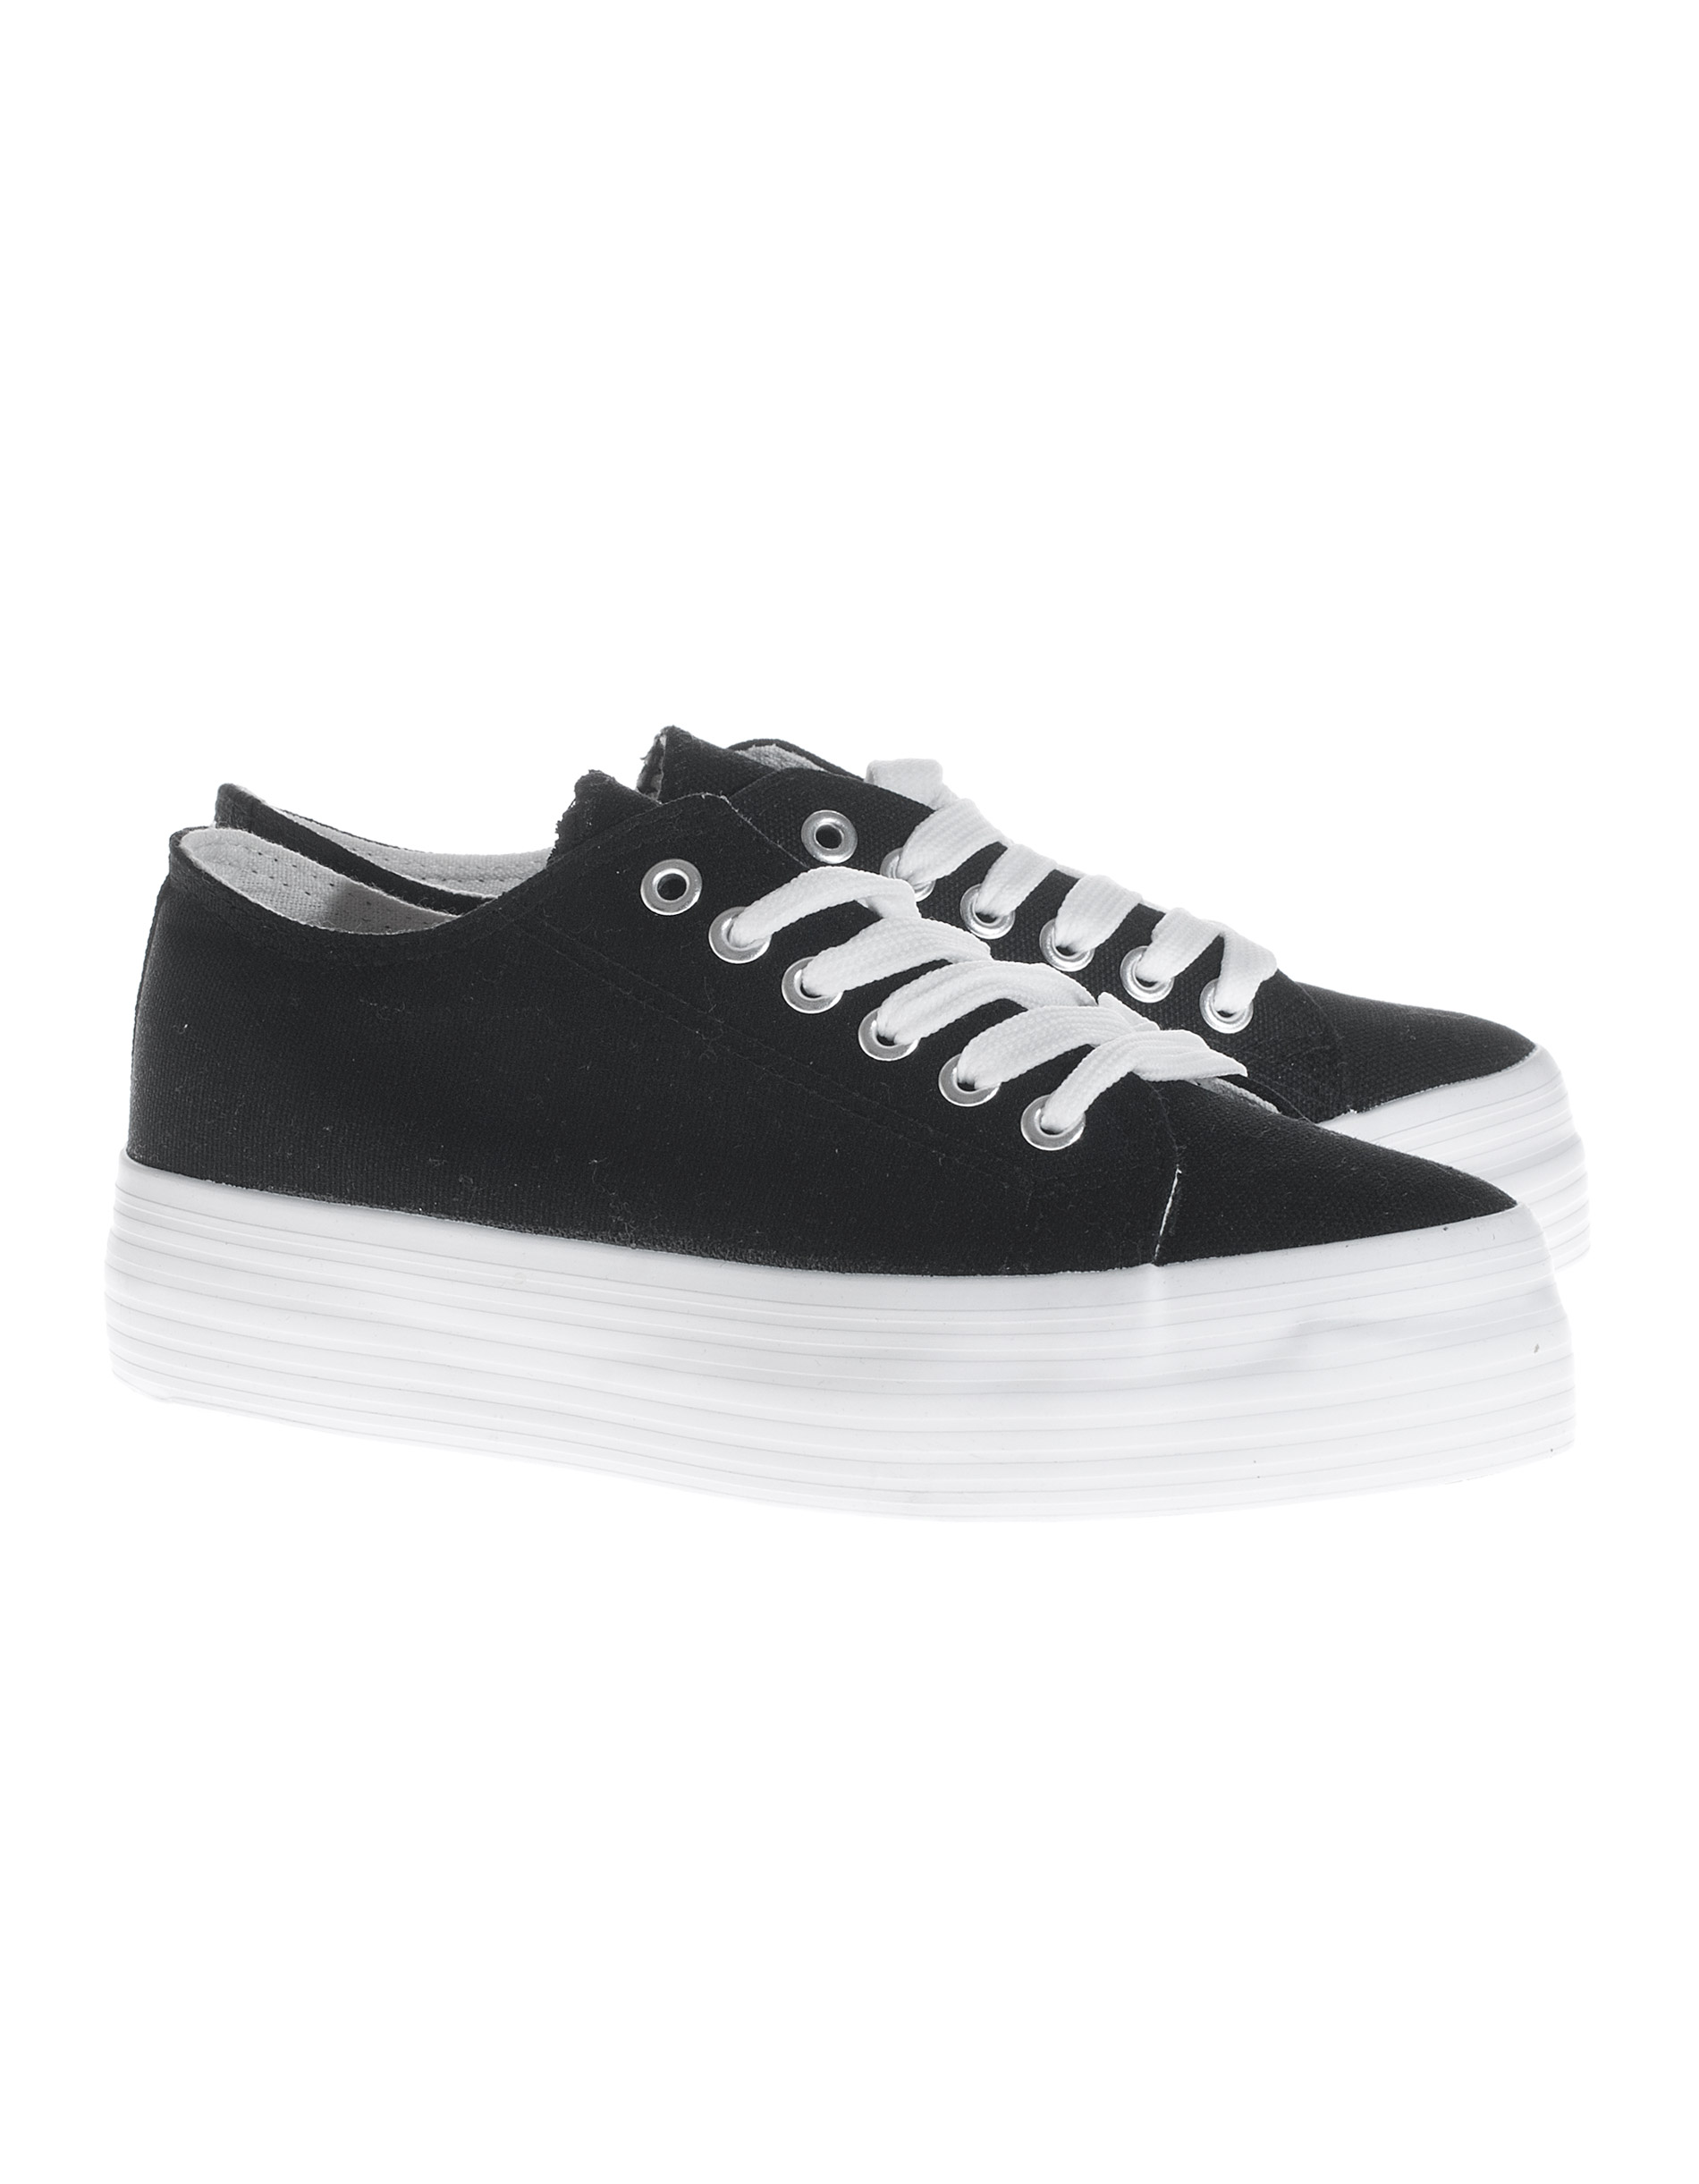 Black And White Canvas Pictures Defeeter Black White Canvas Platform Canvas Sneakers Shoes